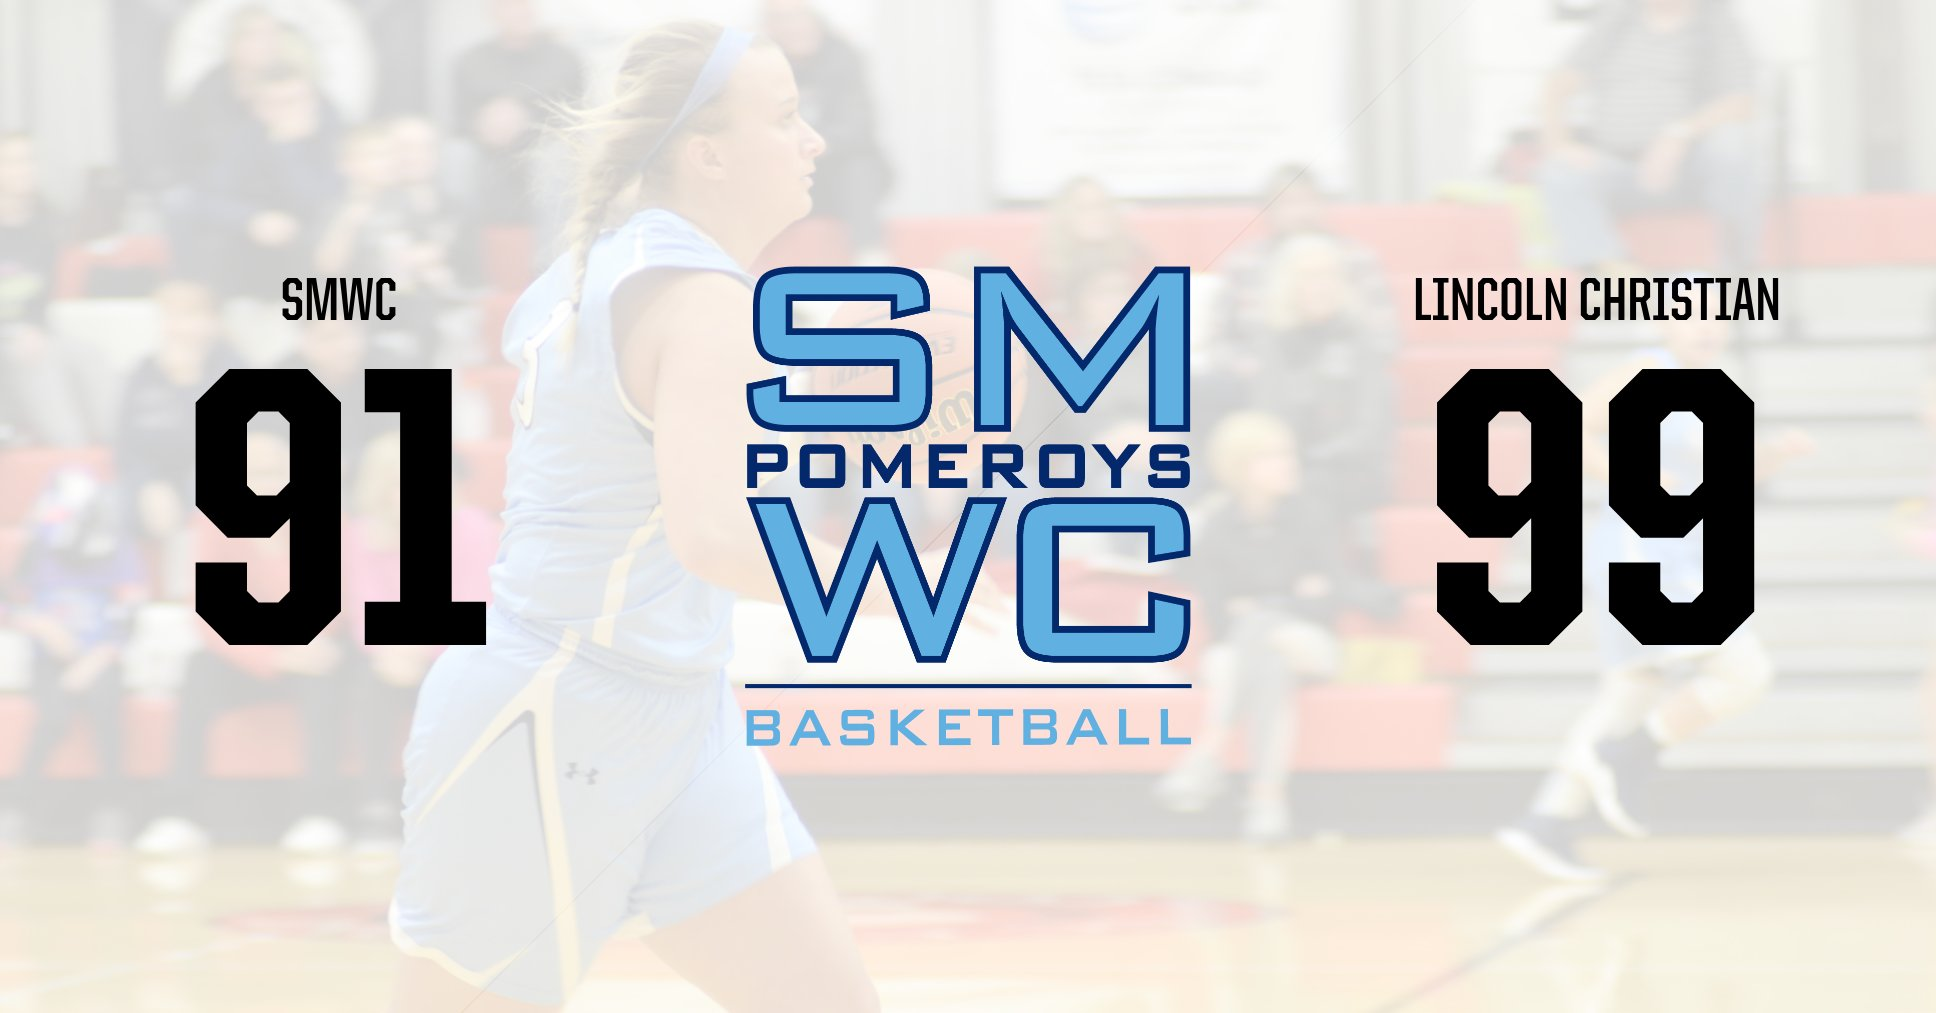 Pomeroys Fall Short in the First Contest of 2019